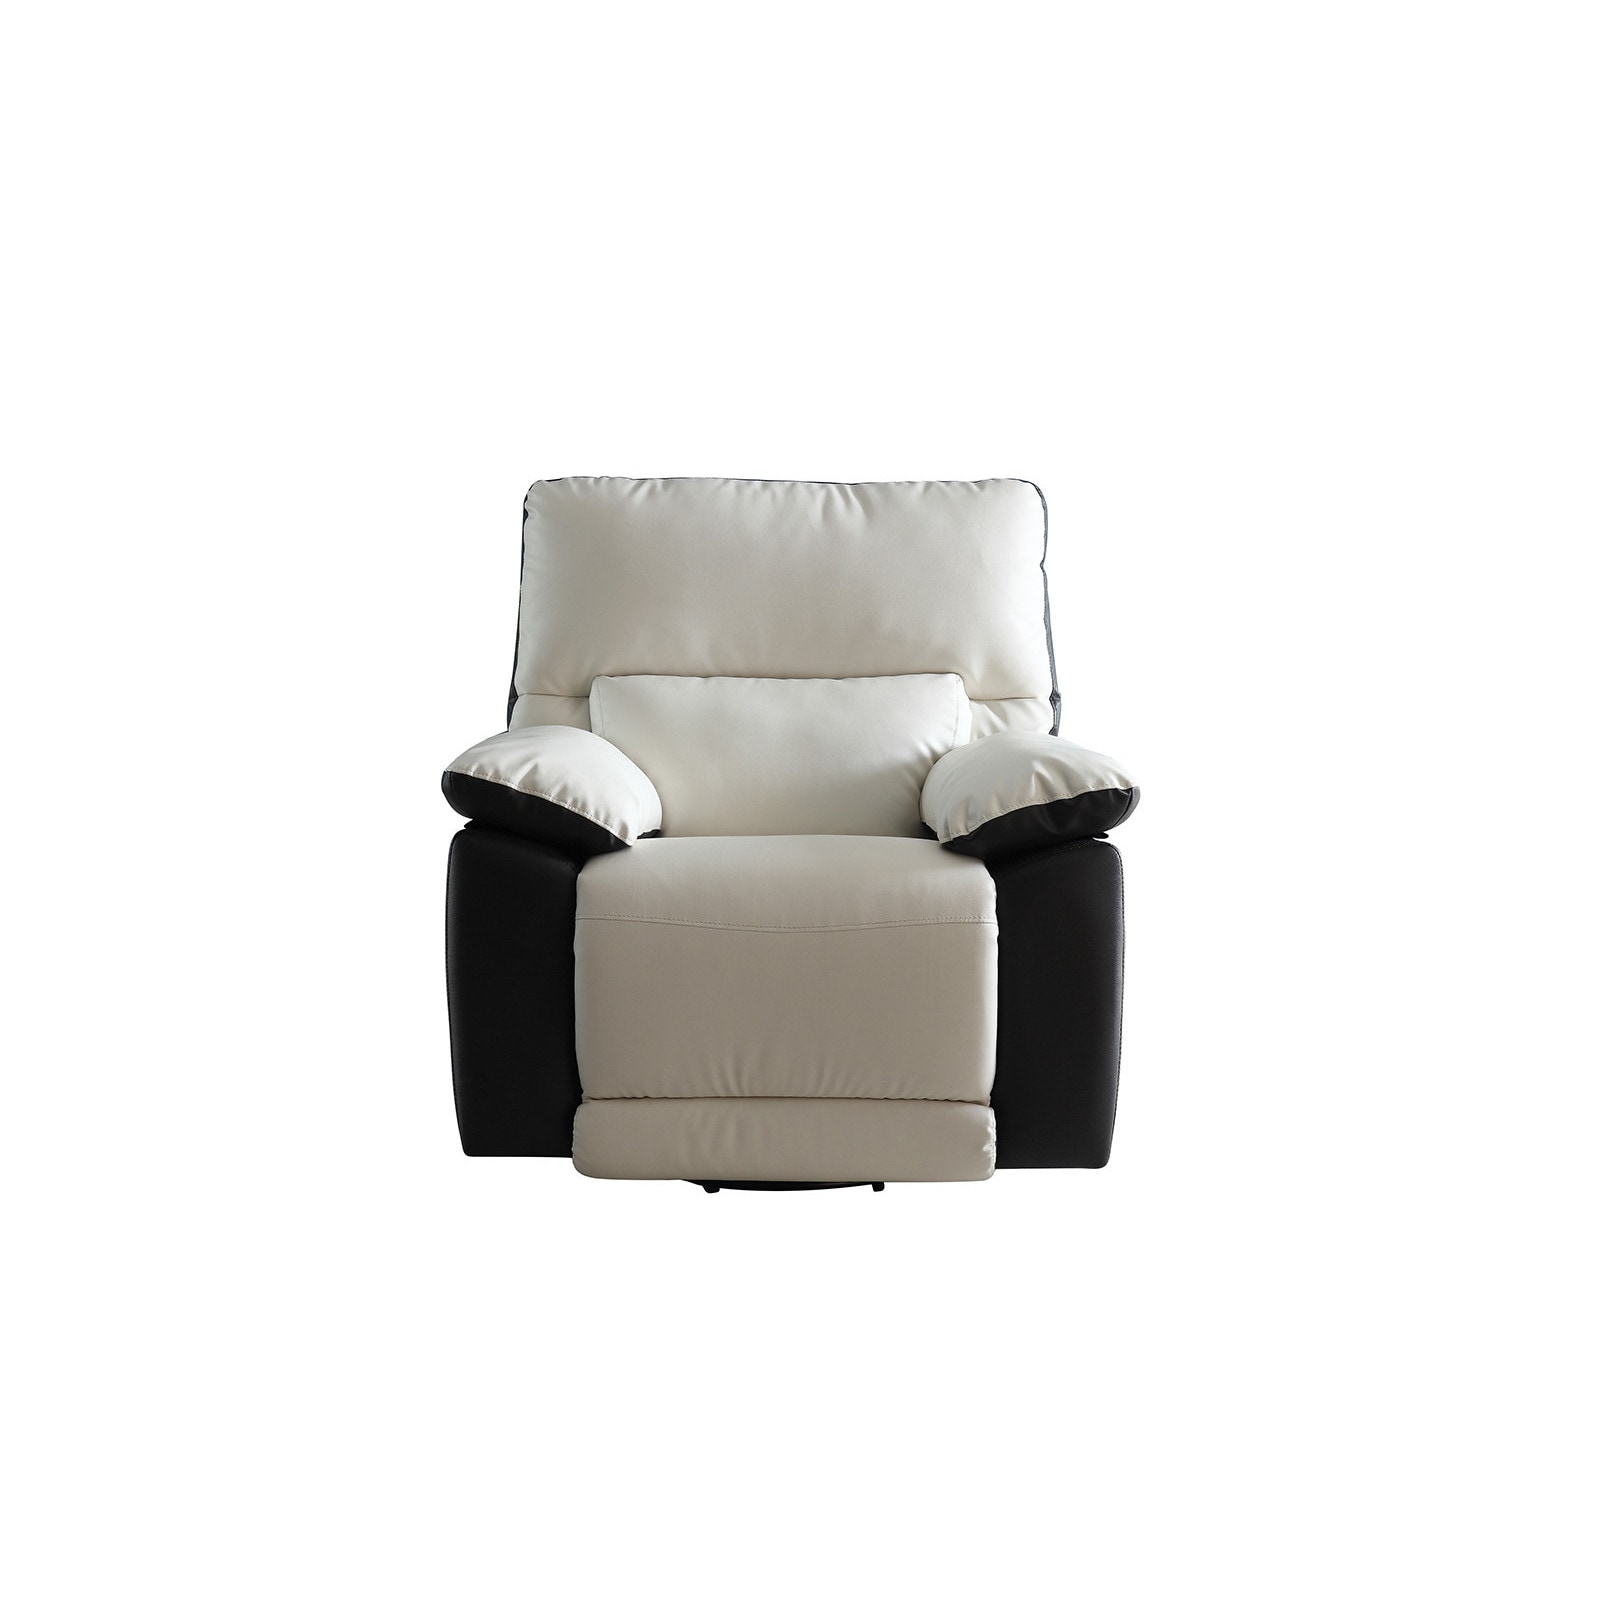 Modern Recliner Chair Modern Two Tone Bonded Leather Oversize Recliner Chair